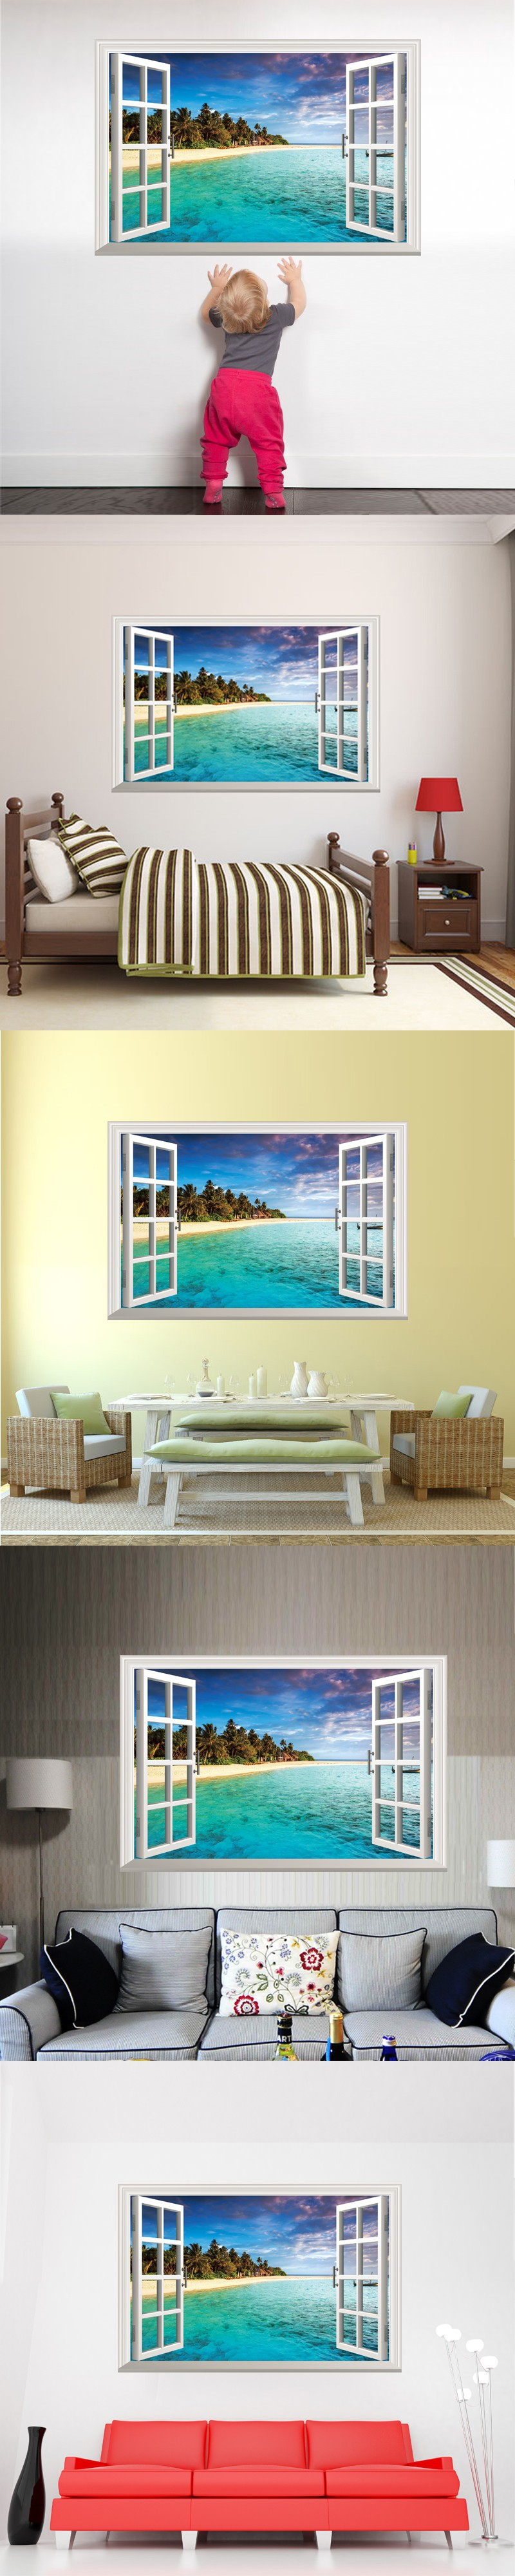 Removable False Window 3D Wall Stickers Creative Wall Art DIY Beach Island Home Decor Decals for Living Room Decoration $10.89